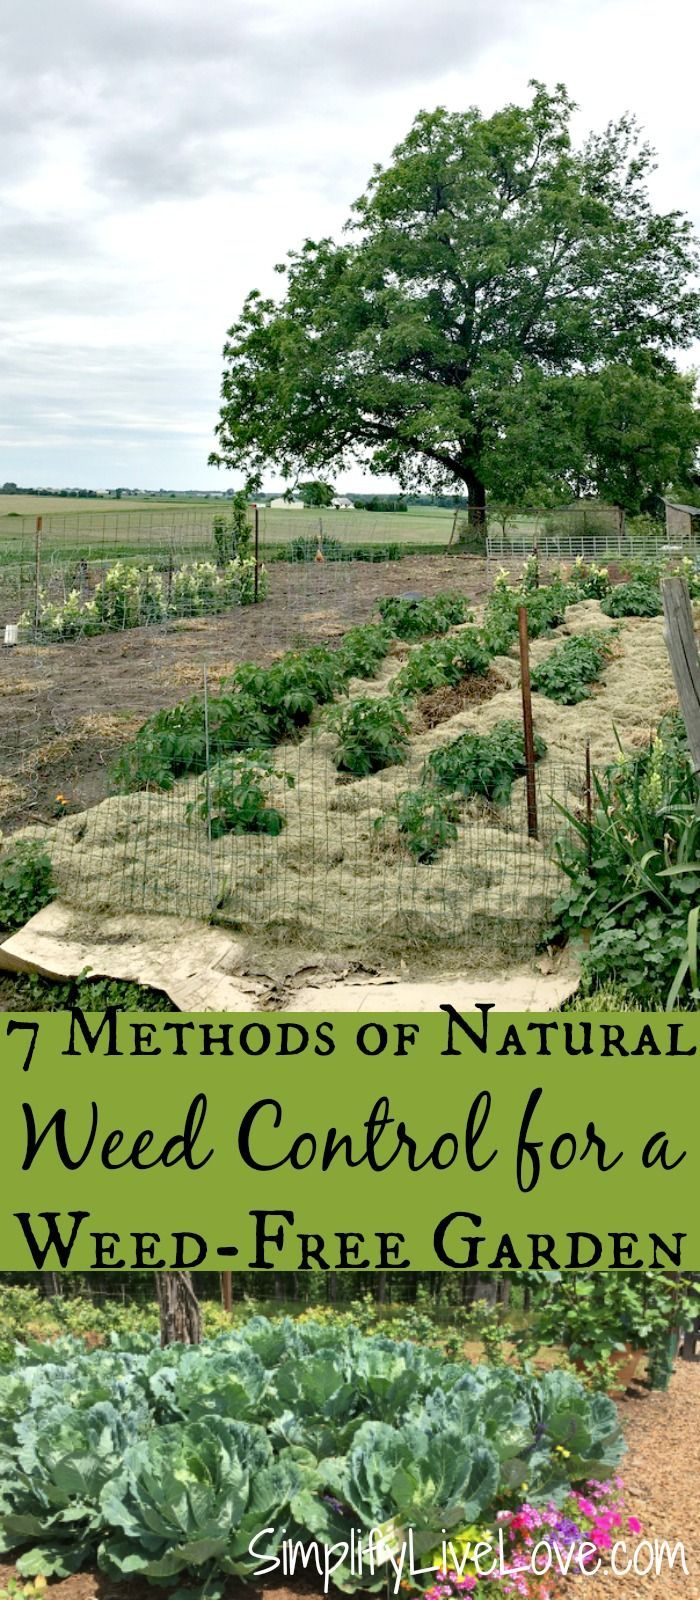 These 7 methods of natural weed control will free you from spending all your time weeding and help you establish a weed free garden! If you're as tired of weeding your garden as I am, then you need these tips for a weed free garden. #gardening #gardentips #gardens